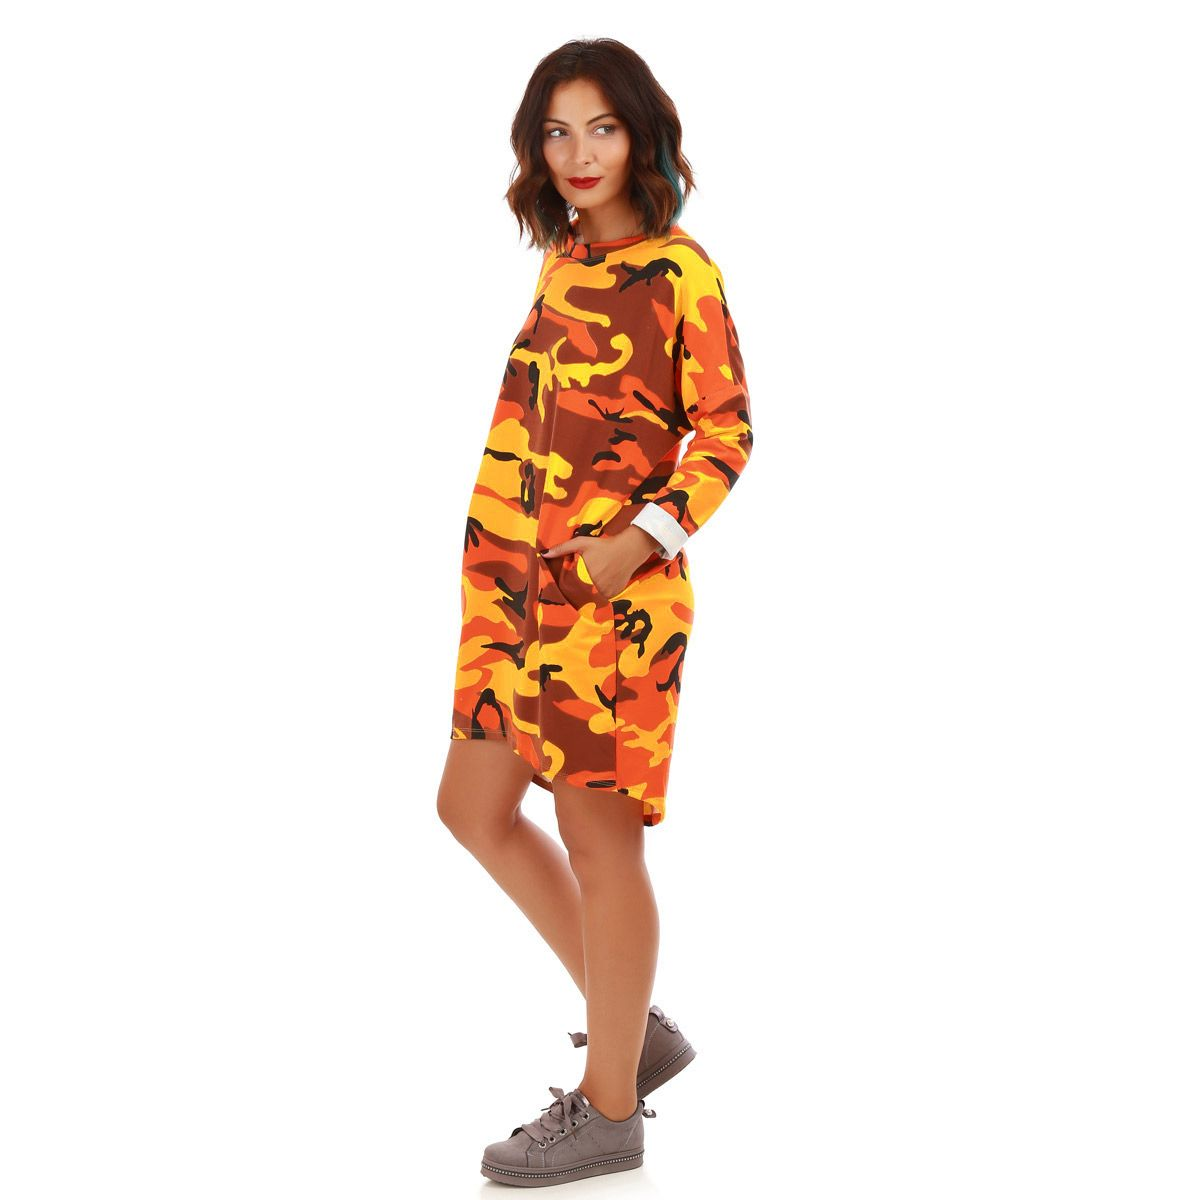 Robe sweat camouflage jaune moutarde et orange